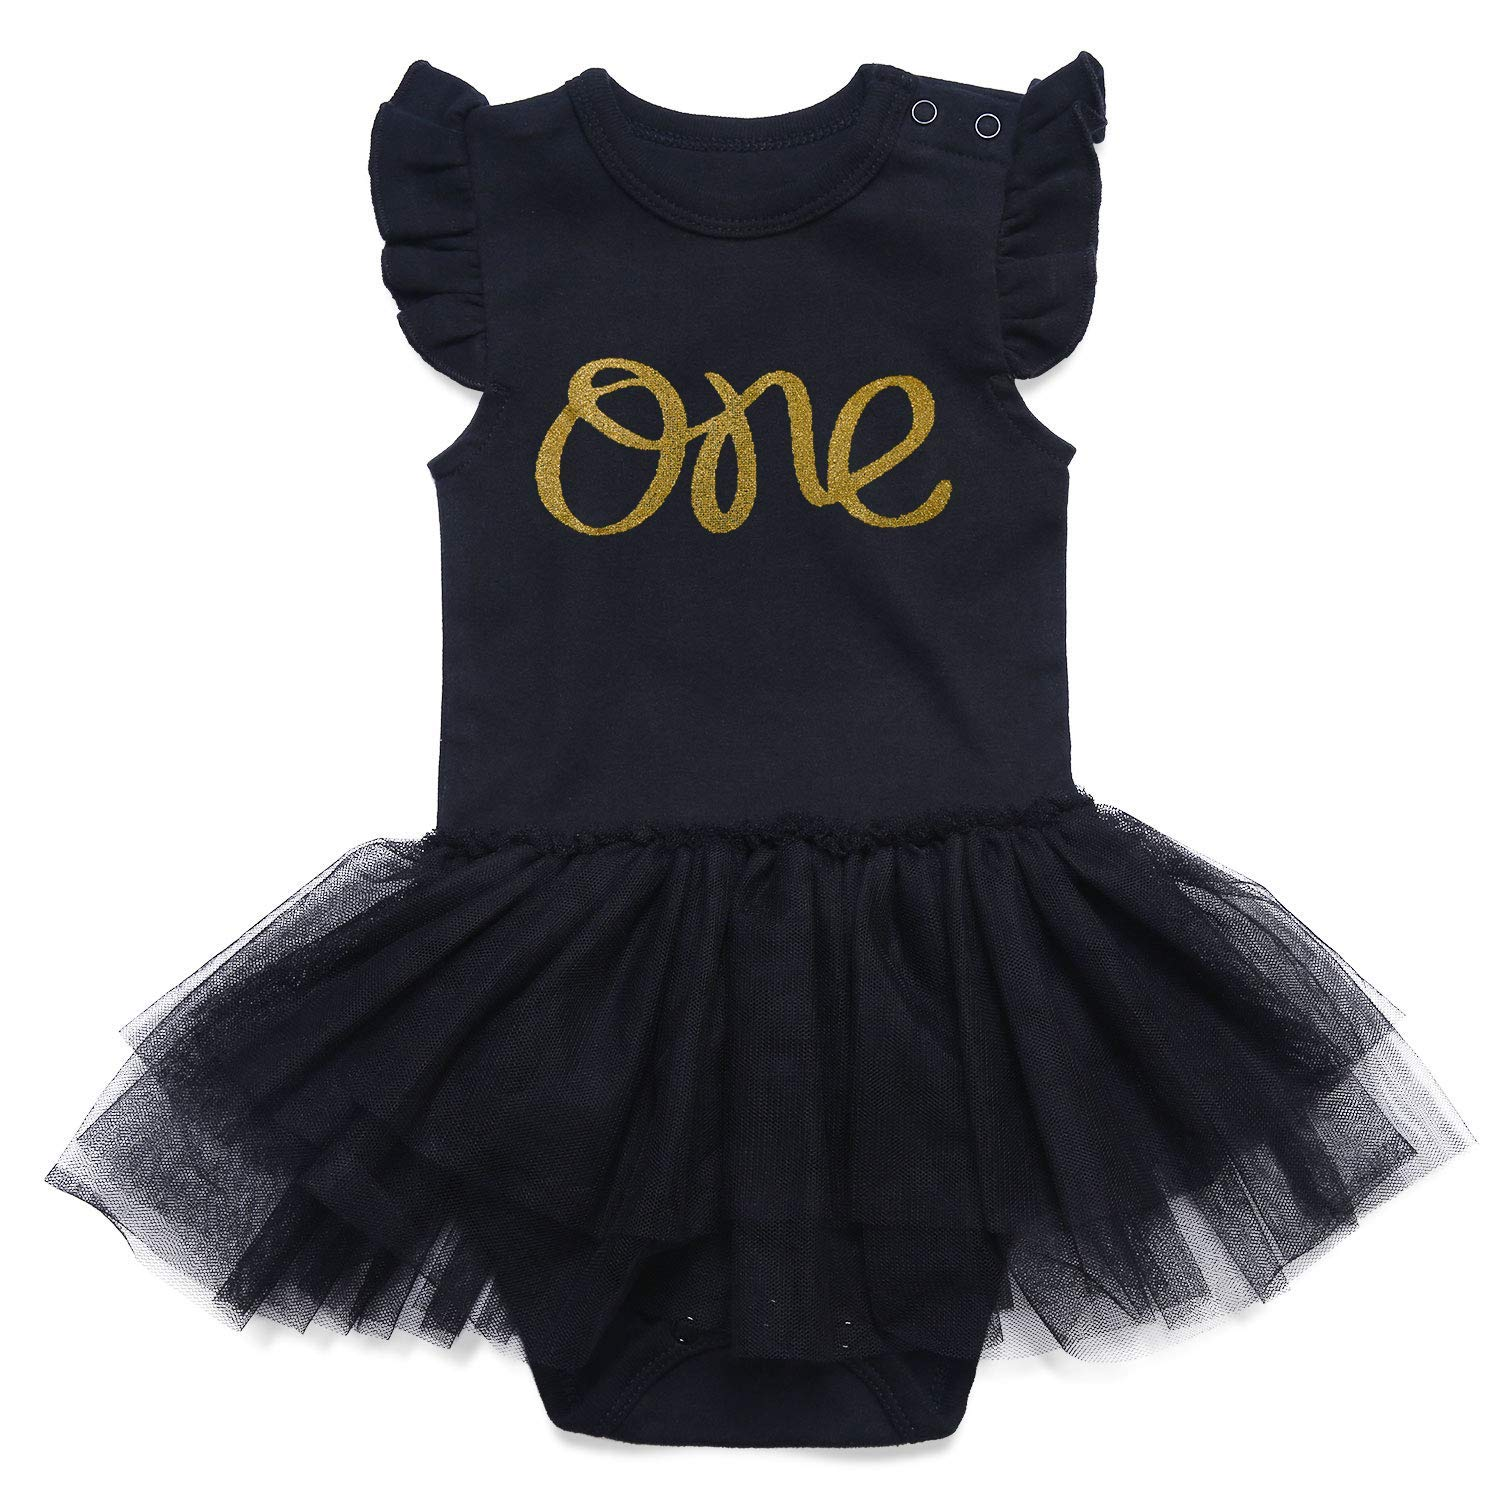 d93c92280bb Get Quotations · SOBOWO Baby Girls My Little Black Tutu Dress Bodysuit 0-24M